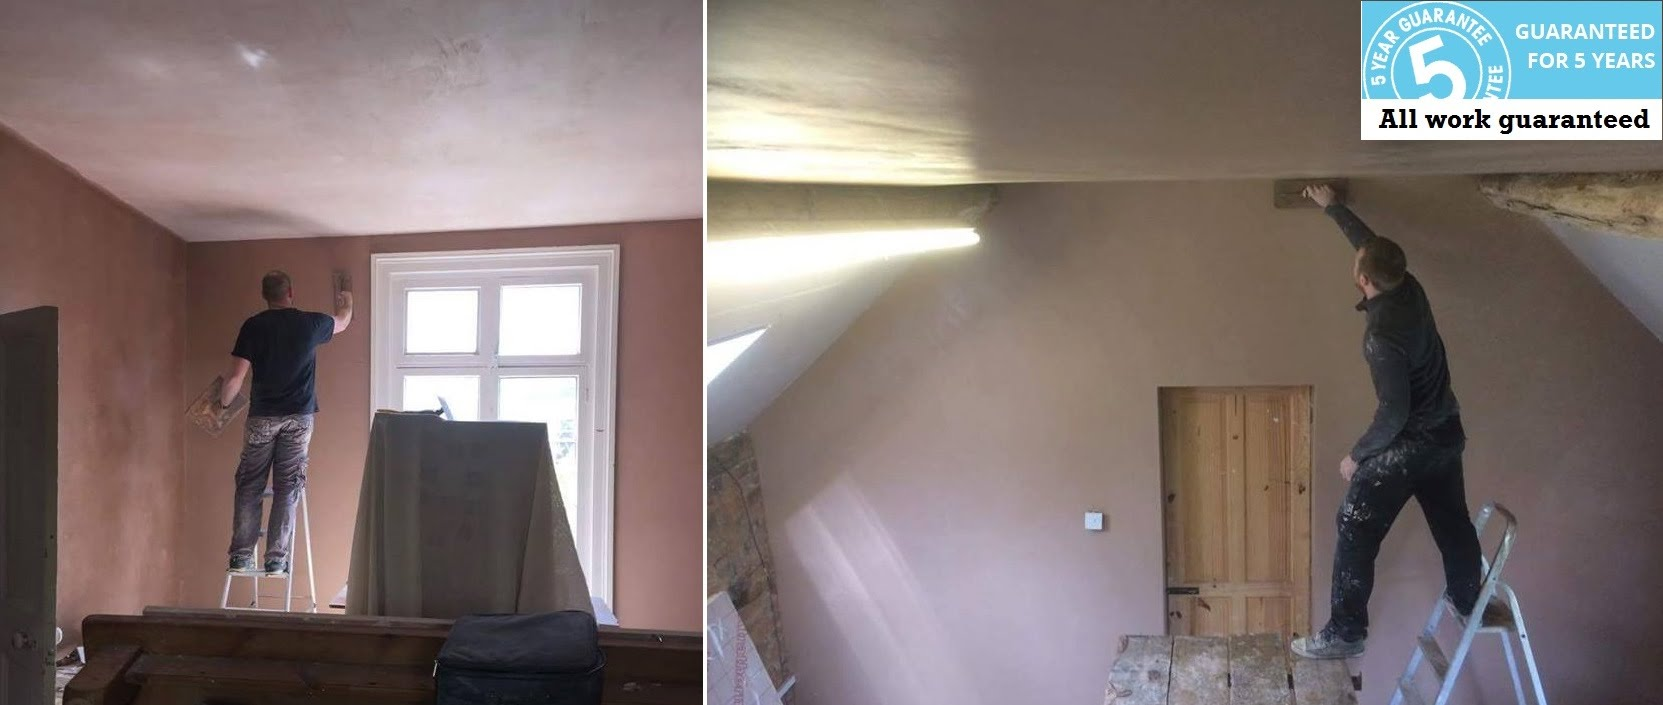 Sd Roberts Quality Rated Plasterers Warwickshire Internal Wall Insulation Solid Wall Insulation